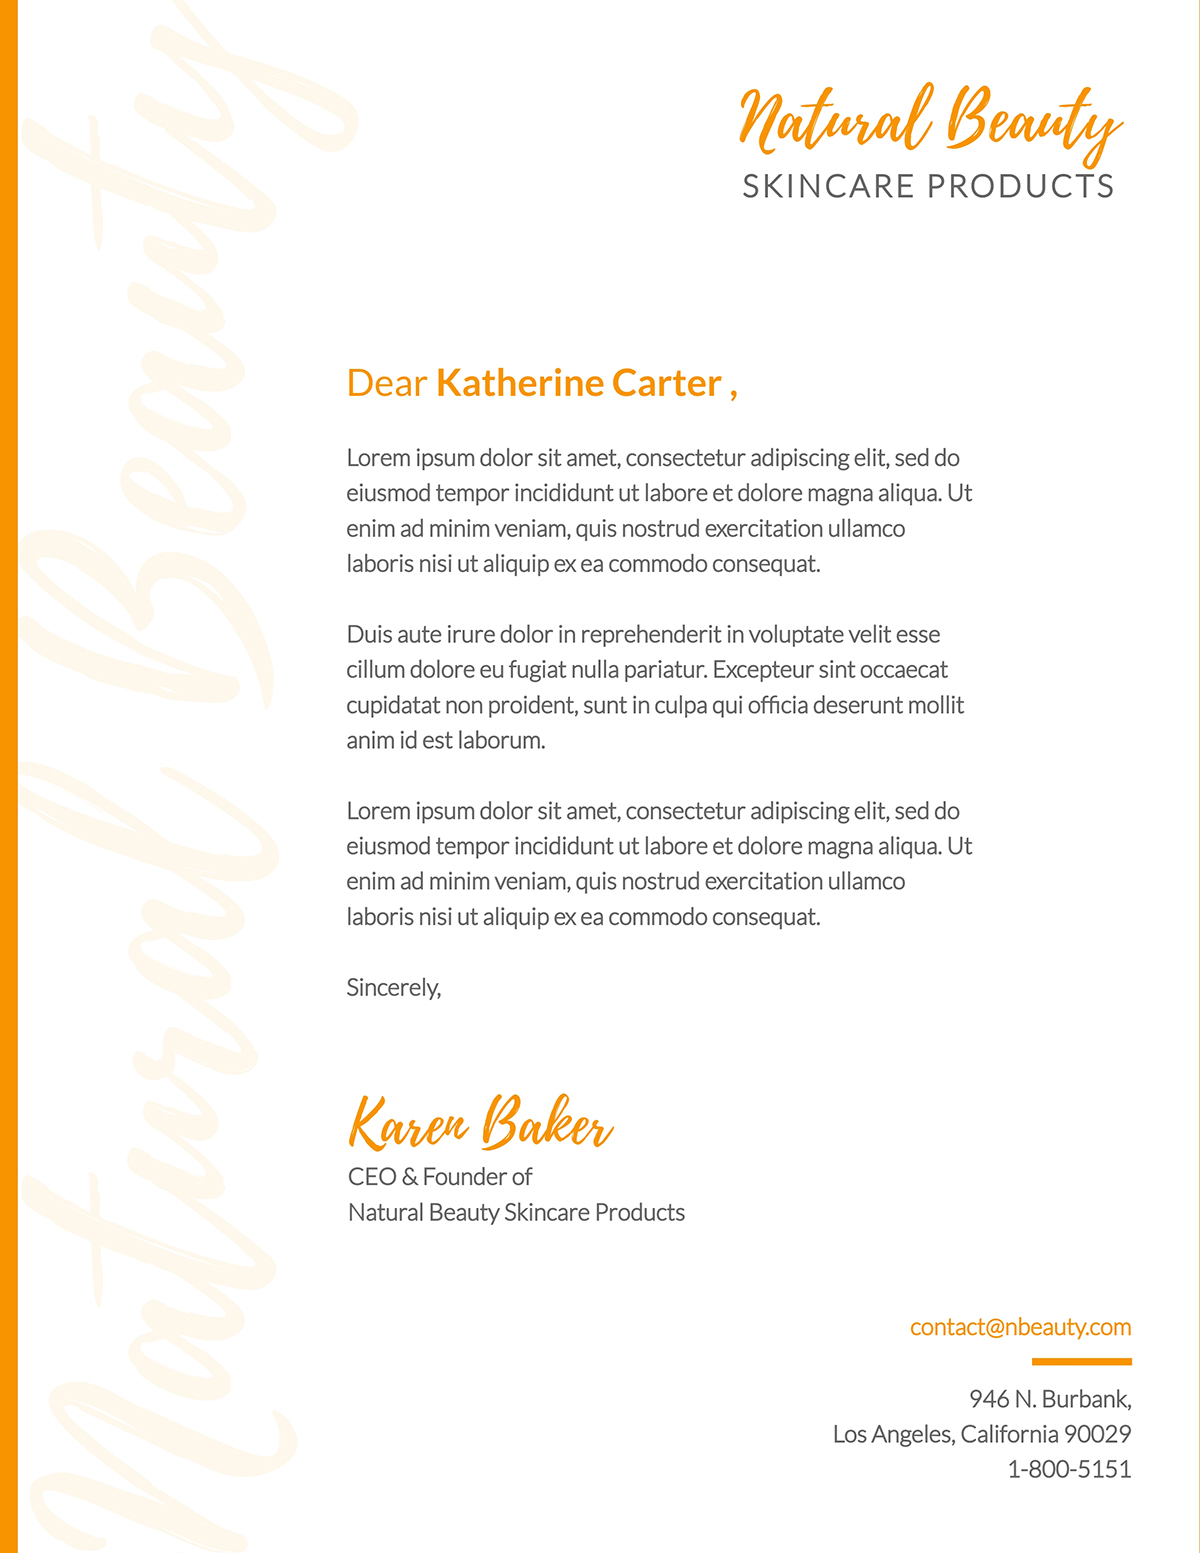 Orange and white business letter template available in Visme.